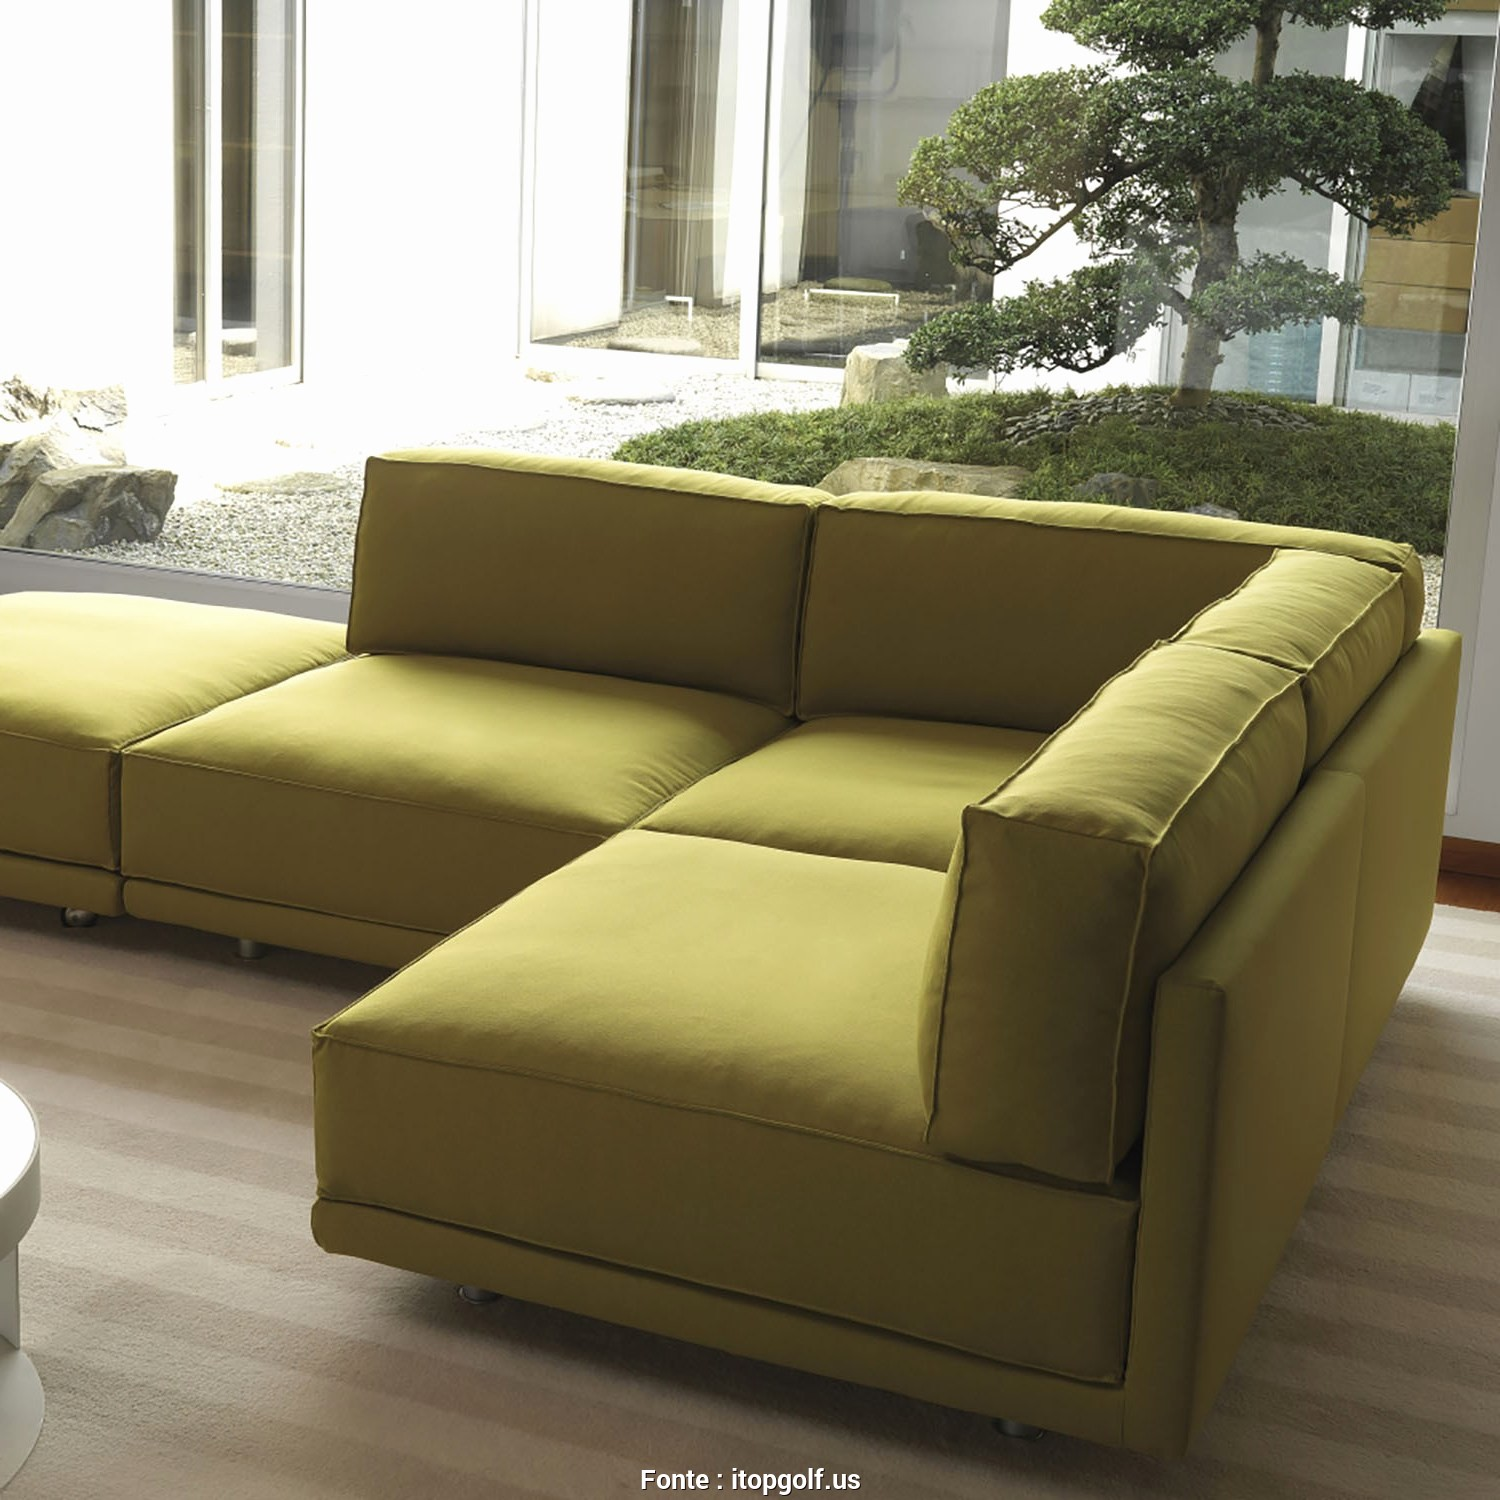 Ideale 5 Divano Poltrone Sofa Angolare - Keever For Congress